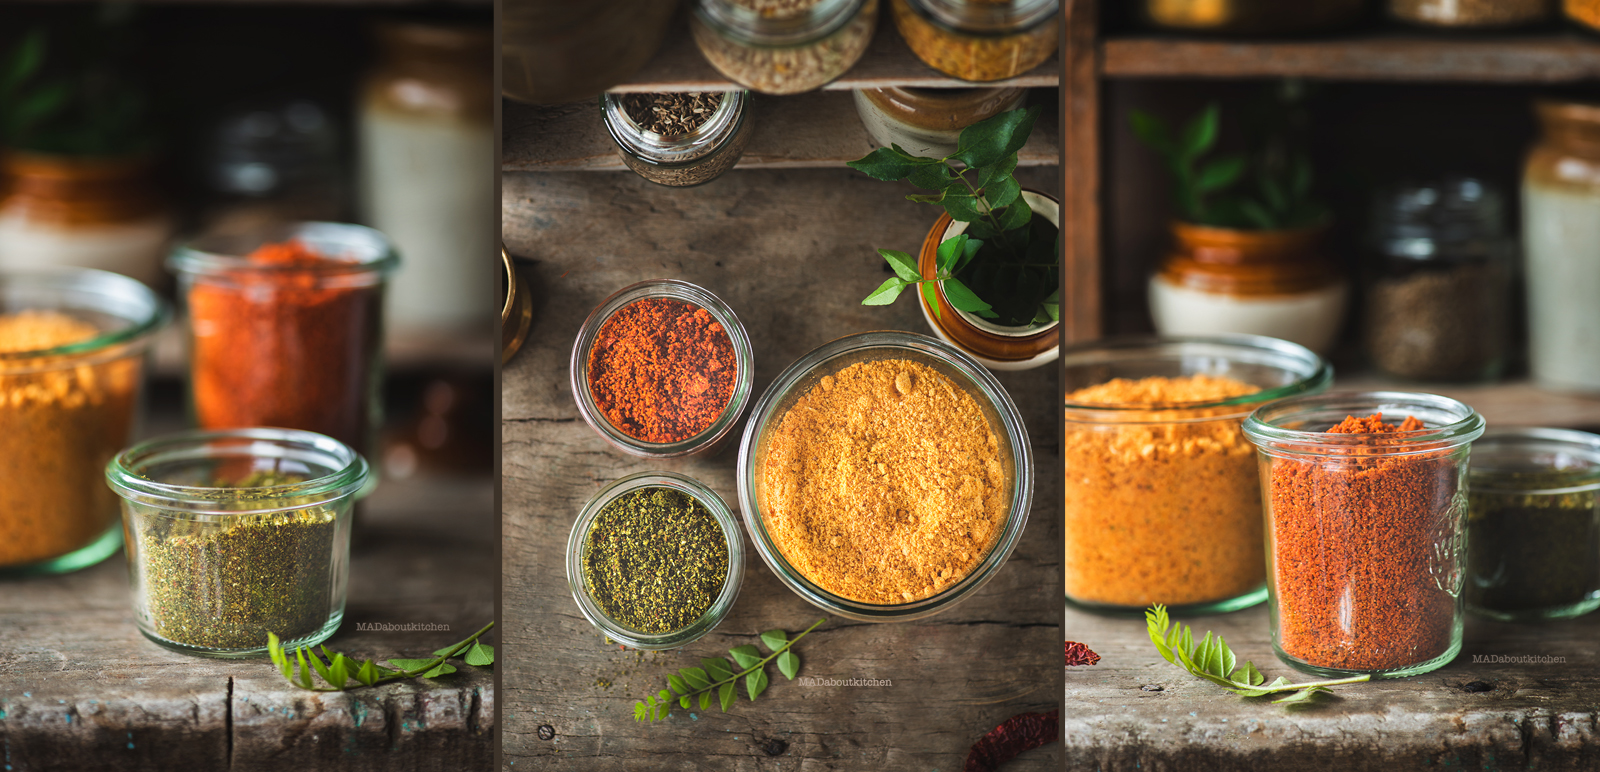 Andhra Style chutney powder or more famously known as Gunpowder is a spicy, garlic powder made using roasted lentils and powdered coarsely.